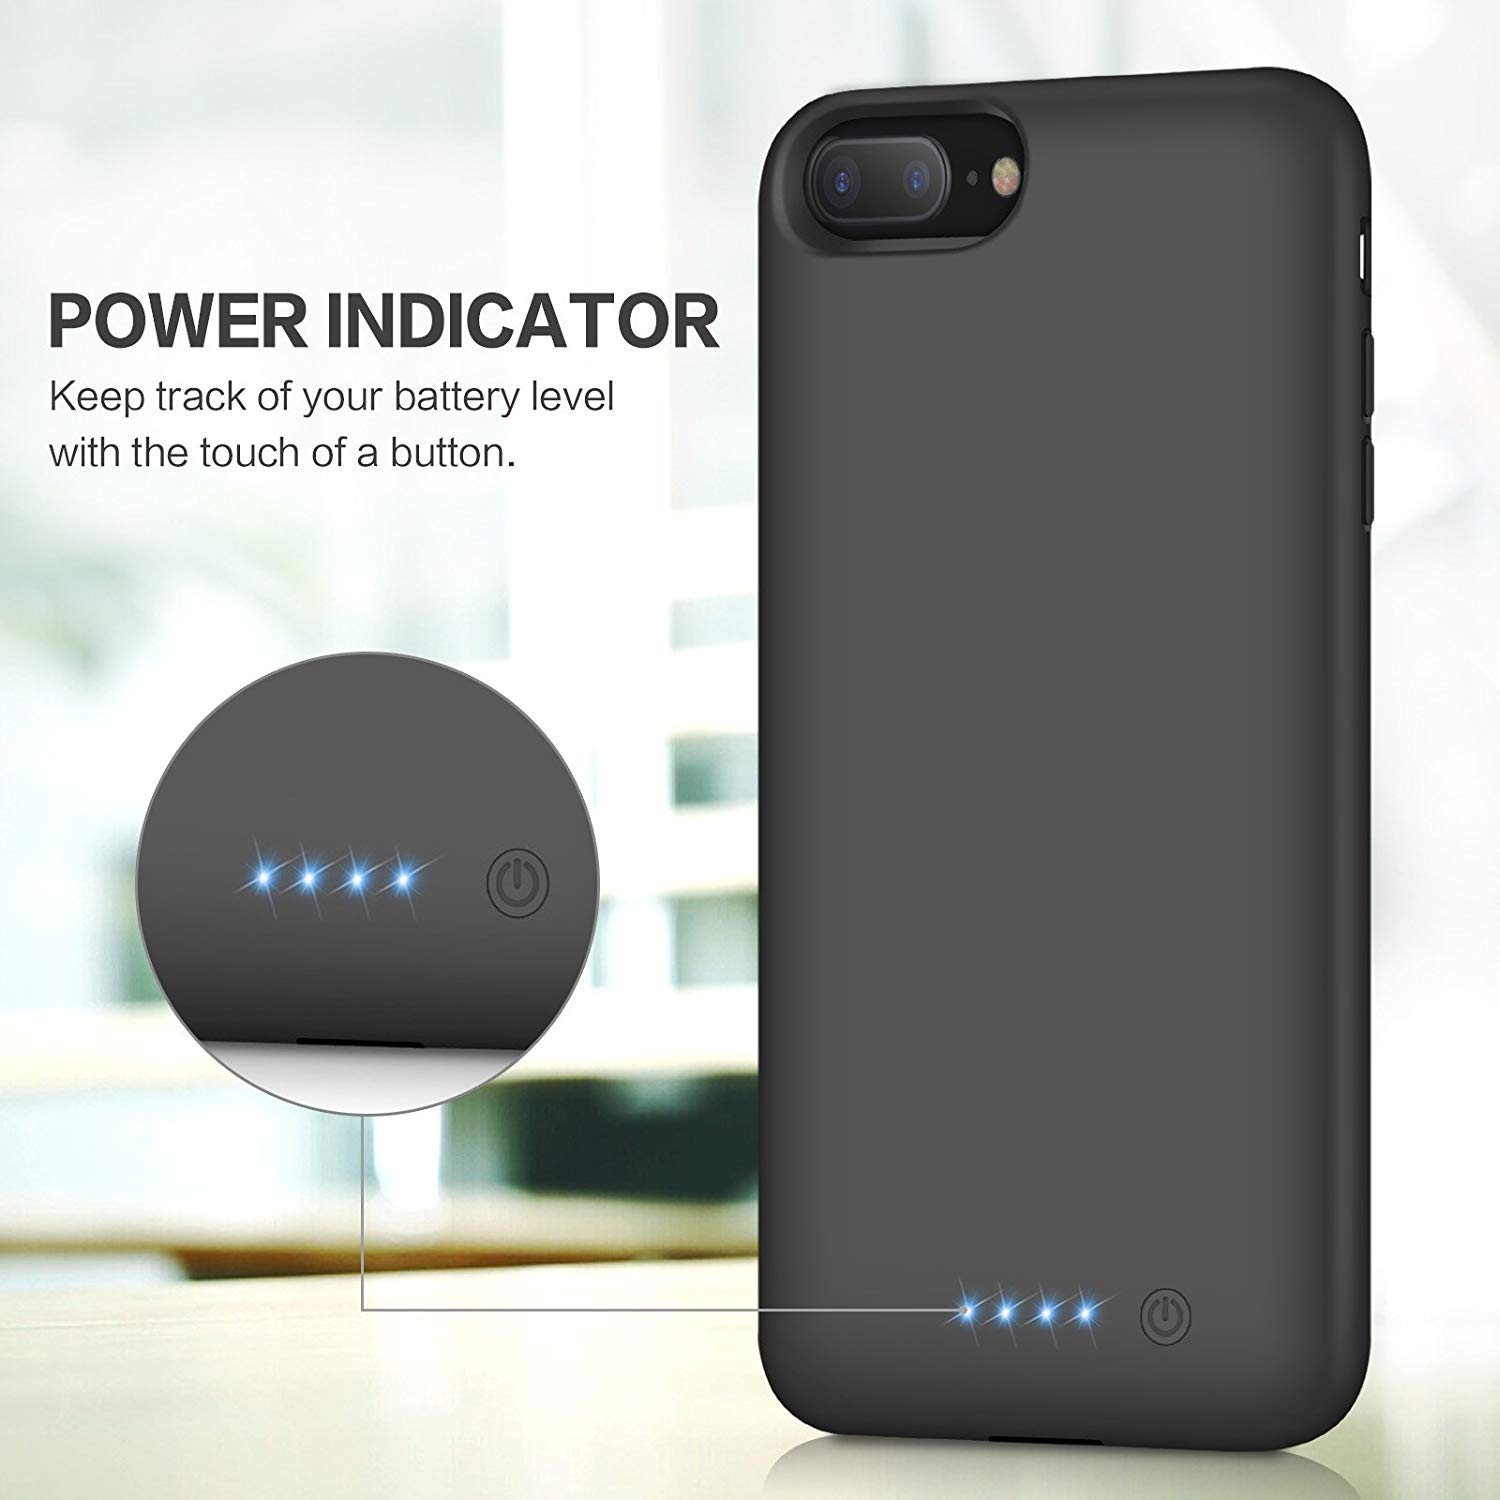 Protective Charger Case-Black 5.5 inch iPosible 8500mAh Portable Rechargeable Charging Case for iPhone 6 Plus//6s Plus//8 Plus//7 Plus Battery Case for iPhone 6s Plus//6 Plus//8 Plus//7 Plus